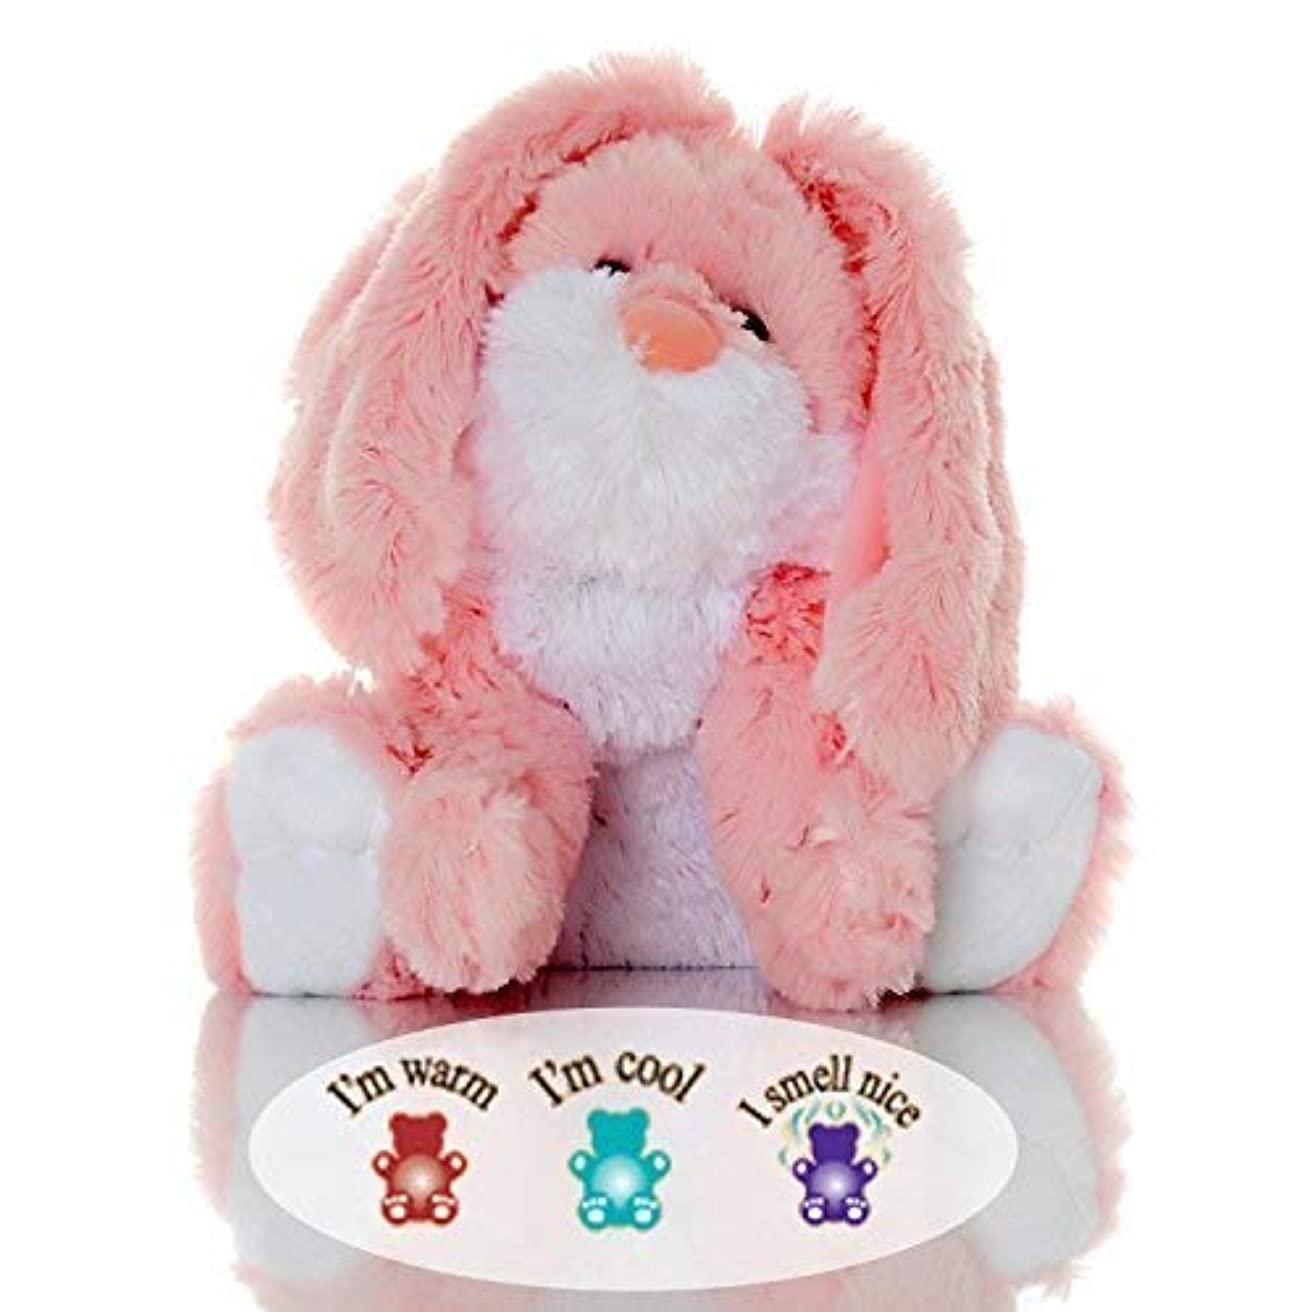 出席する退化する緑Sootheze Rosey Bunny Rabbit - Microwavable Stuffed Animal - Weighted Lavender Scented Aromatherapy - Hot and Cold Therapy - 10.5